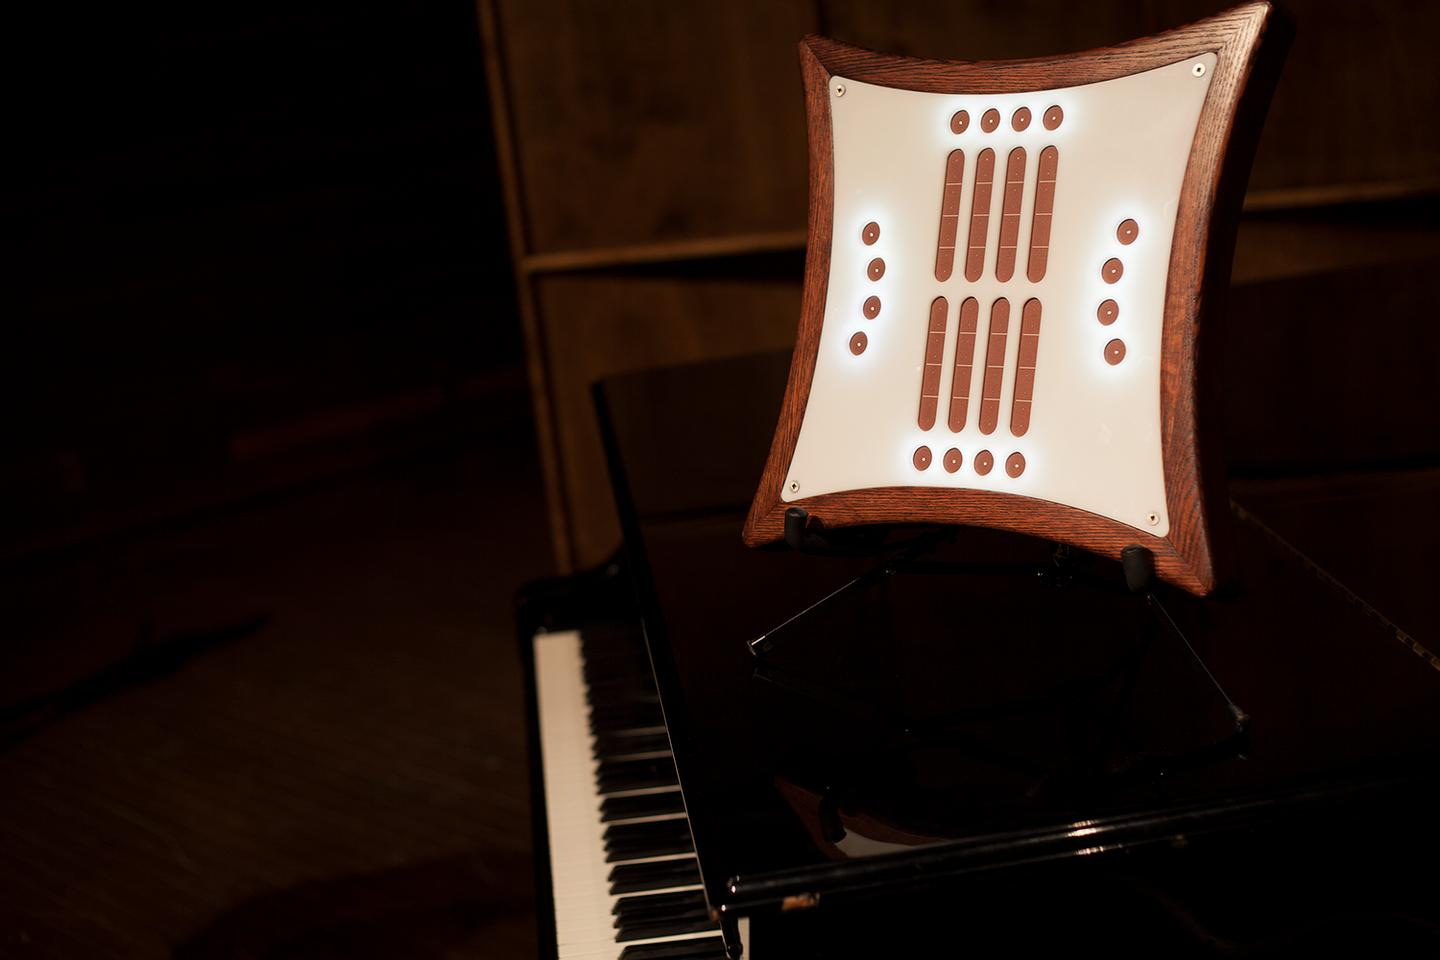 The Mune is crowdfunding on Kickstarter, where pledges start at CAD 776